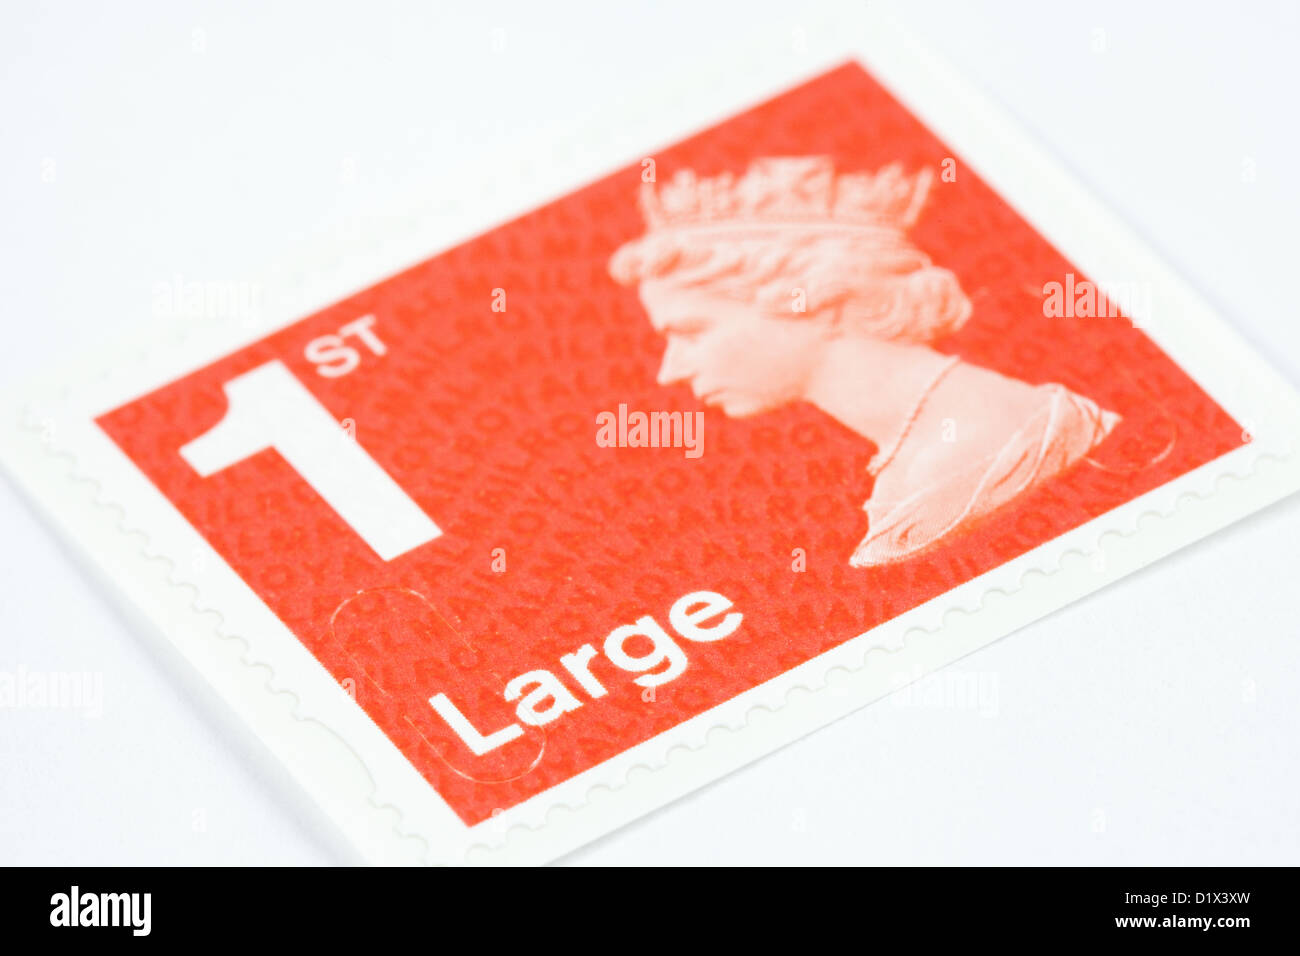 1st class large letter postage stamp for mail, new 2013 colour, UK - Stock Image